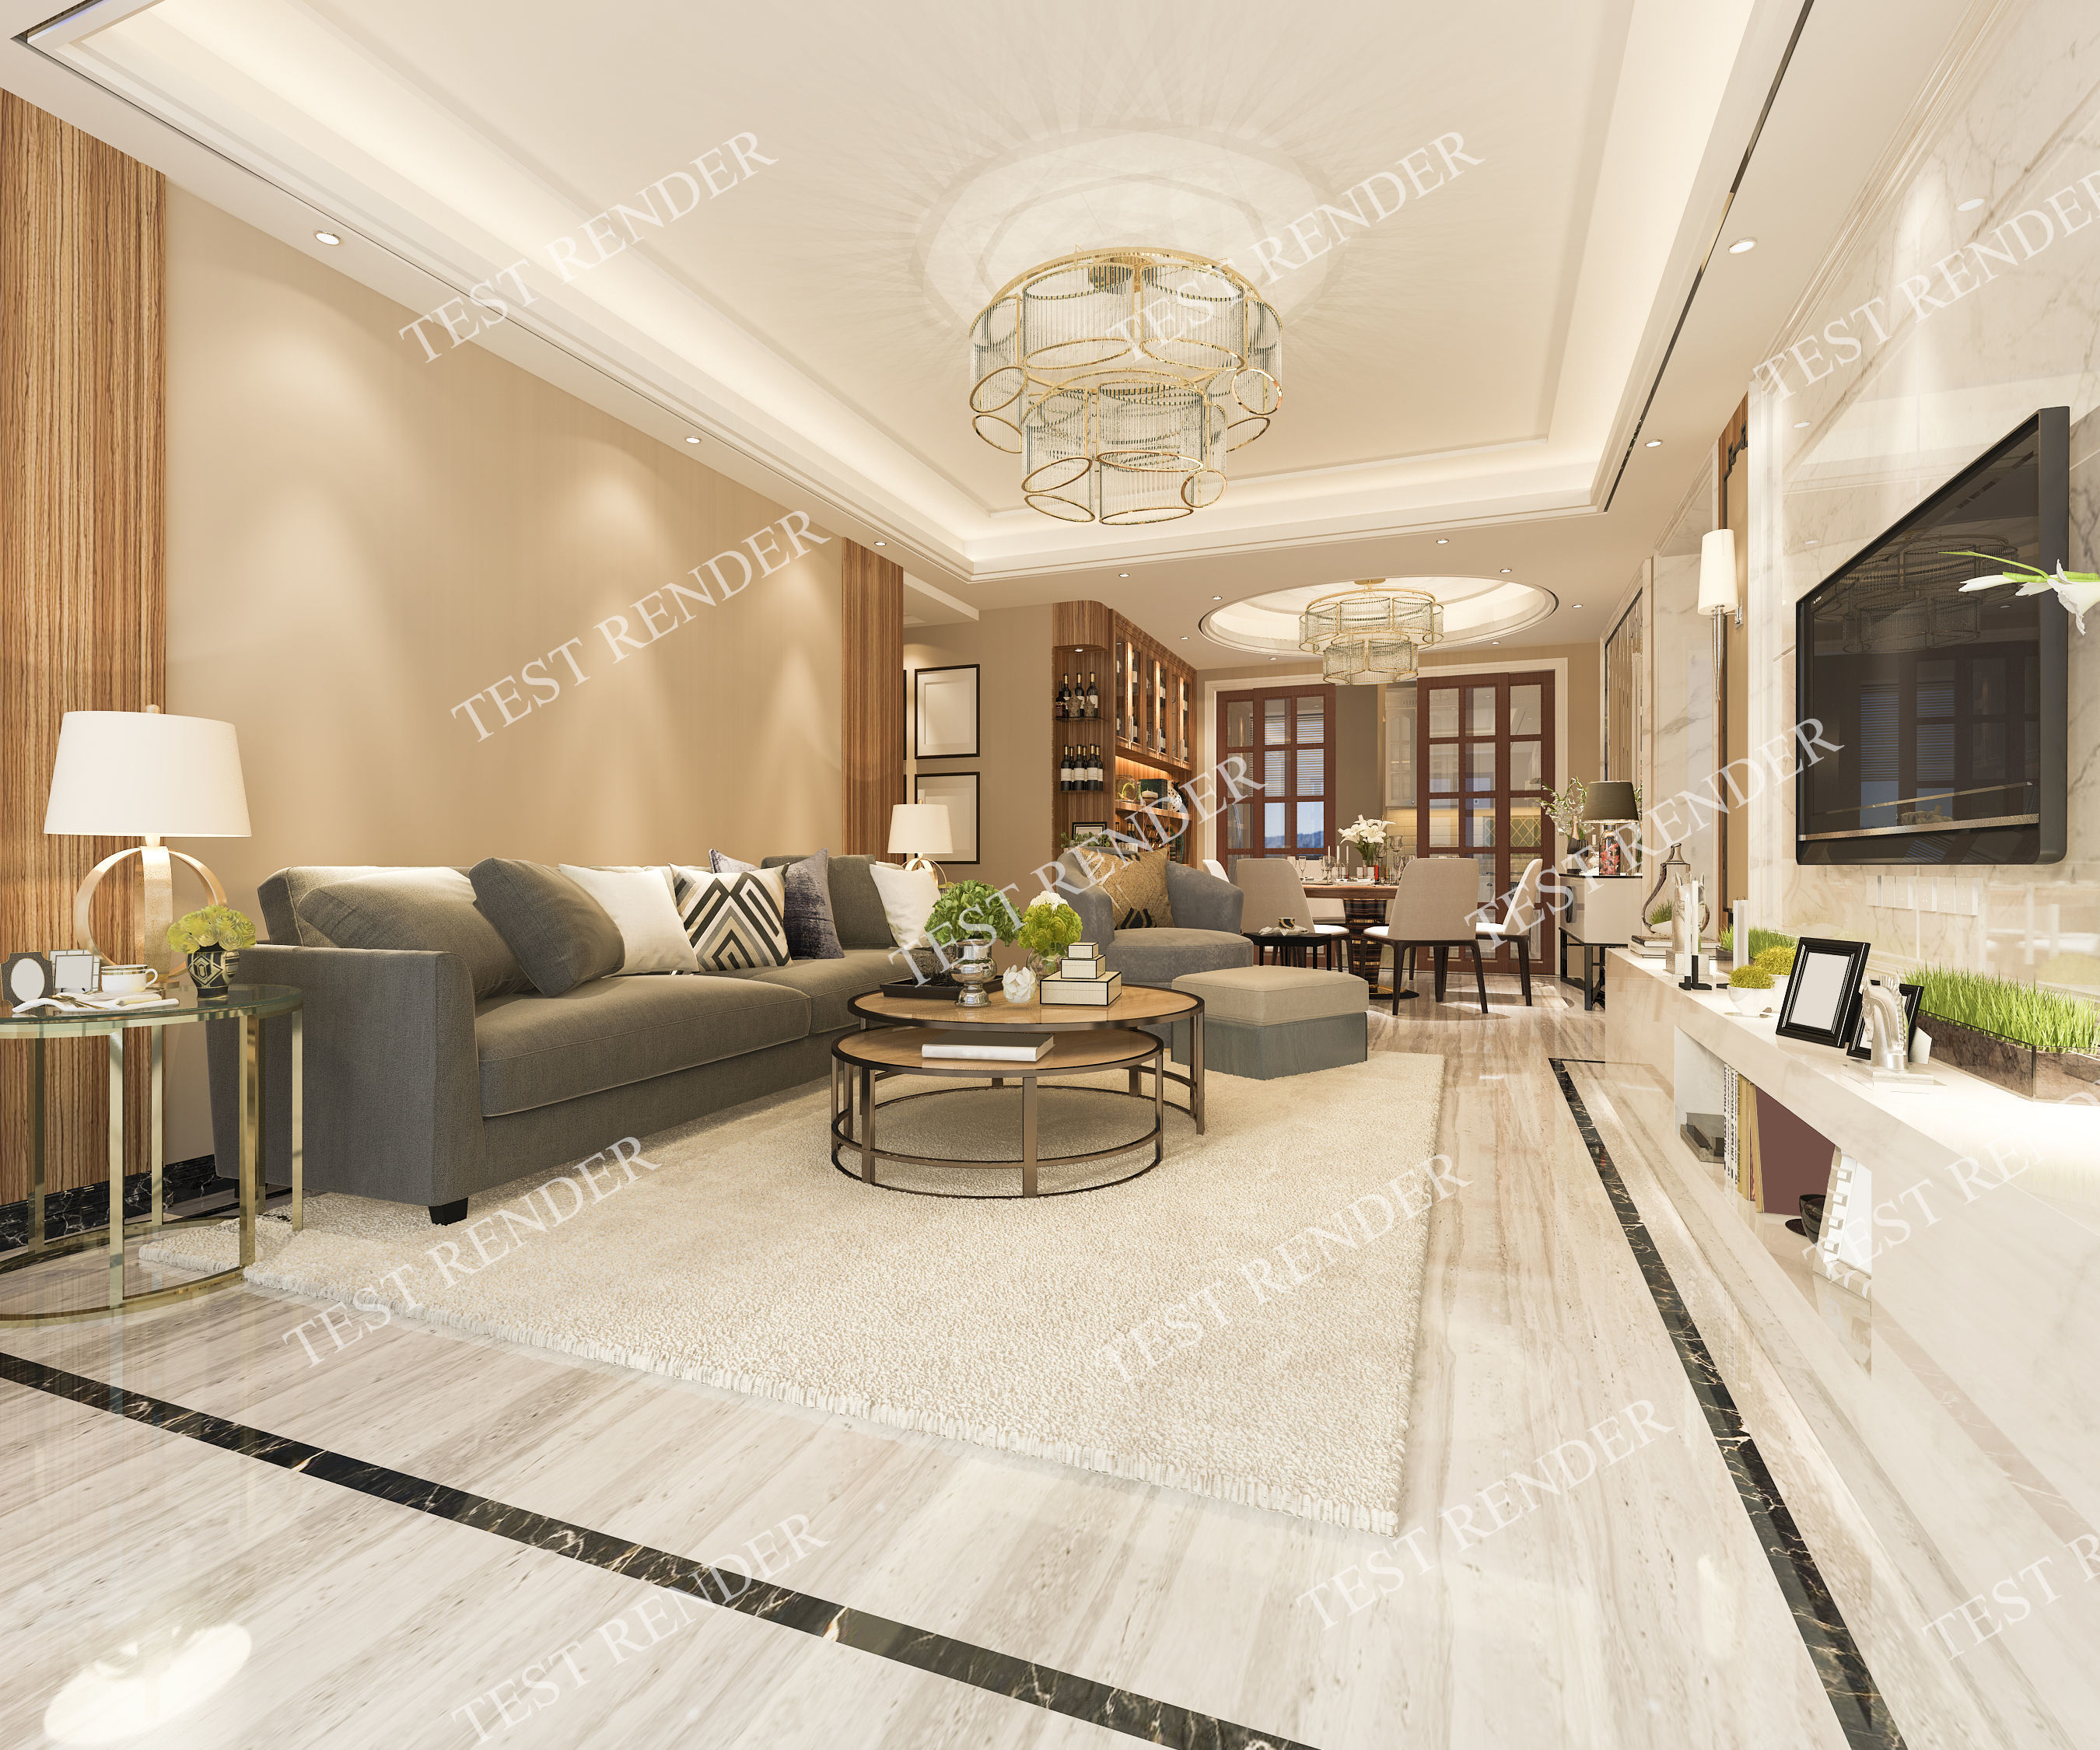 Wondrous Luxury Modern Living Room And Dining Room With Tv 3D Model Interior Design Ideas Tzicisoteloinfo